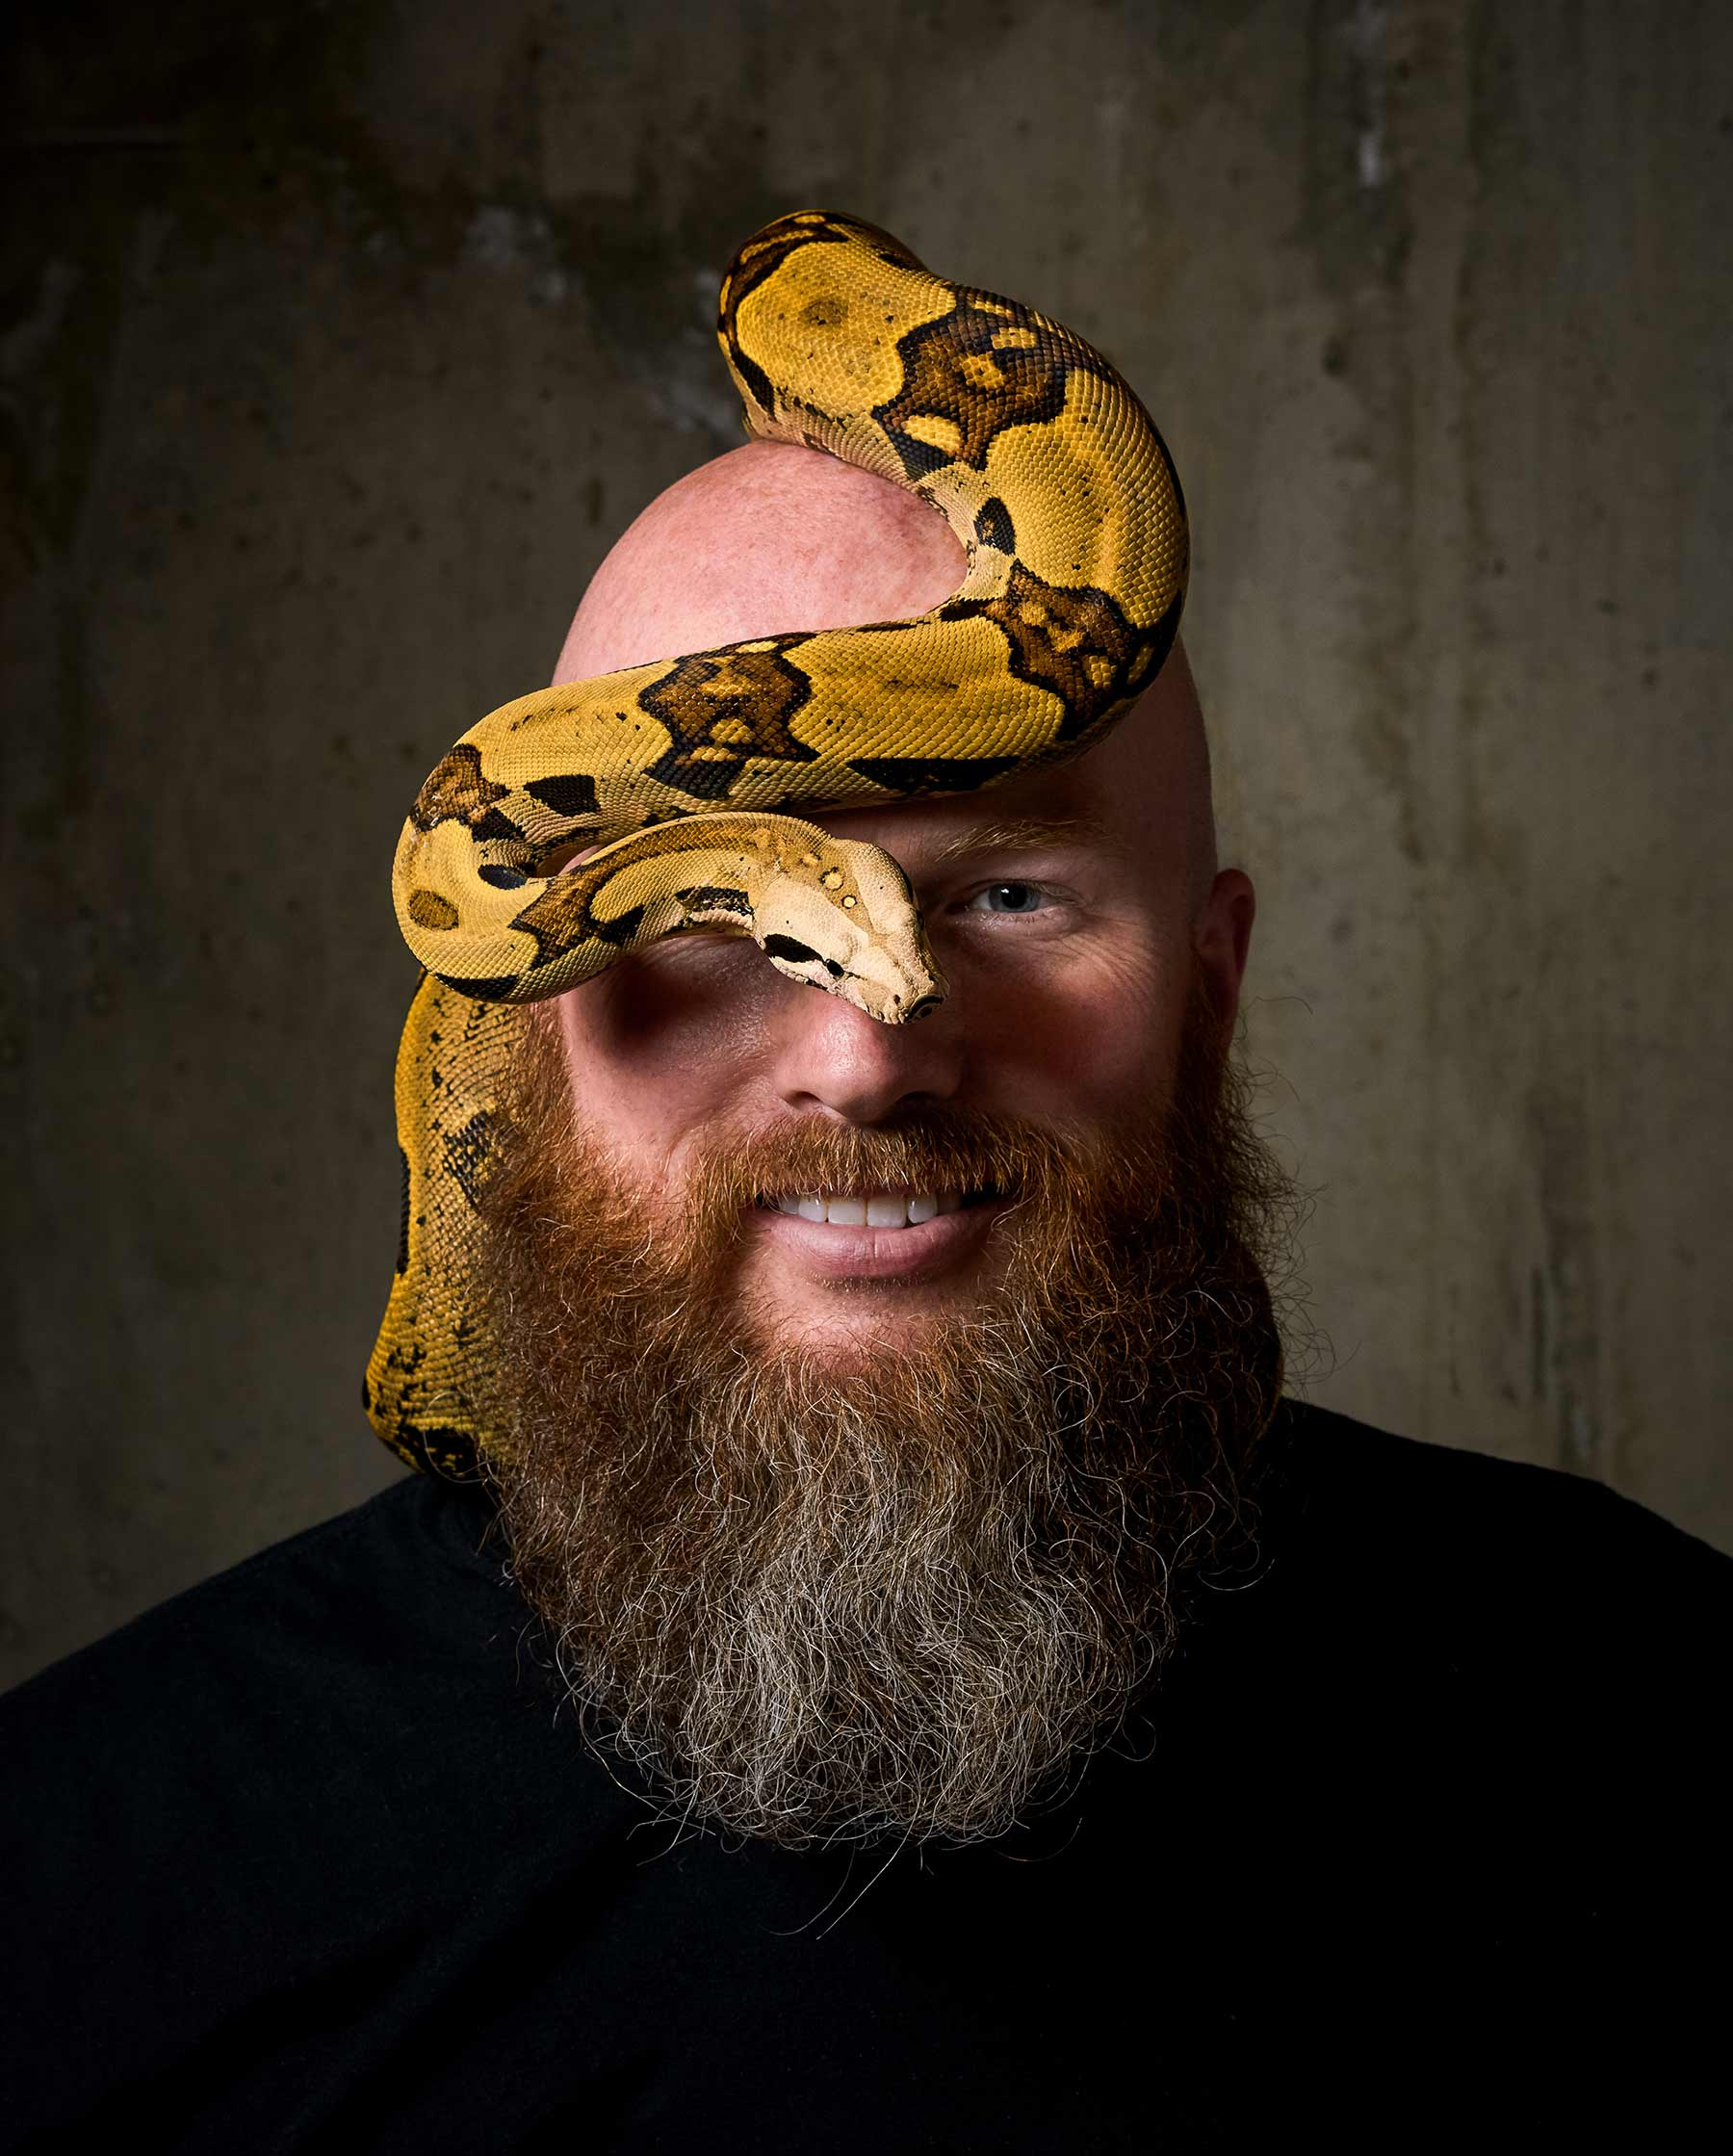 A-studio-portrait-of-a-man-with-a-yellow-and-black-snake-on-his-head